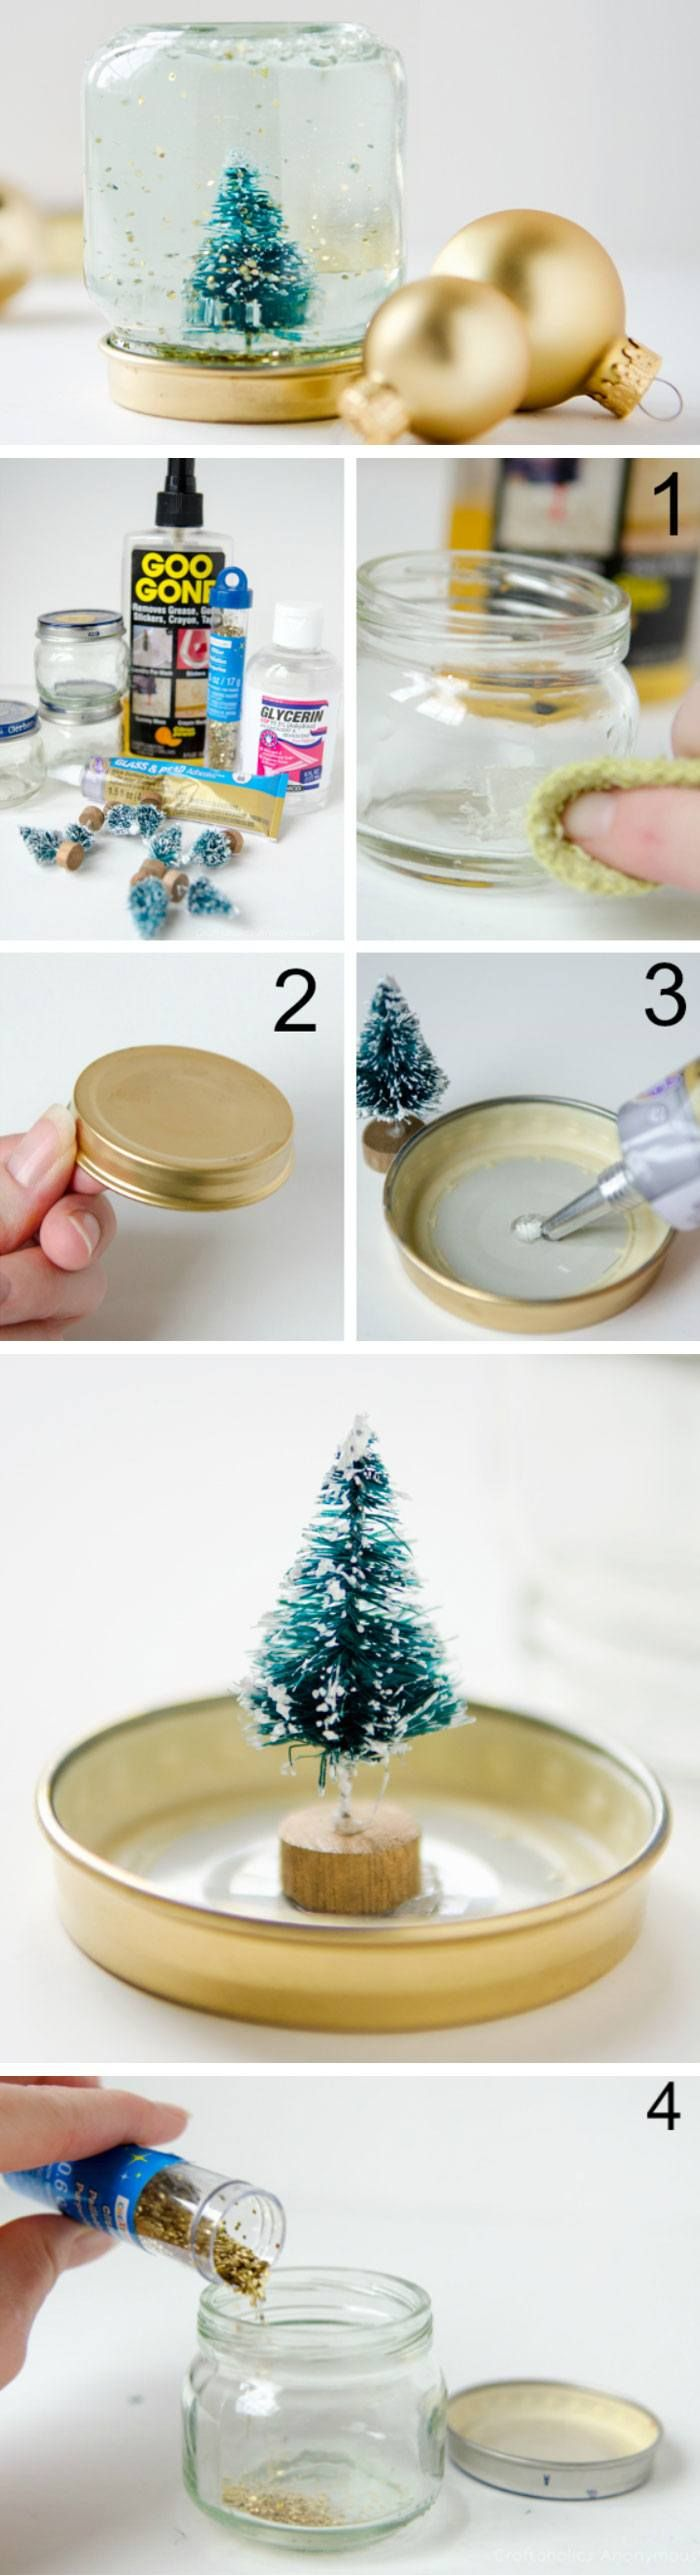 17 best ideas about christmas bedroom decorations on pinterest christmas is rustic christmas - Food in the bedroom ideas ...